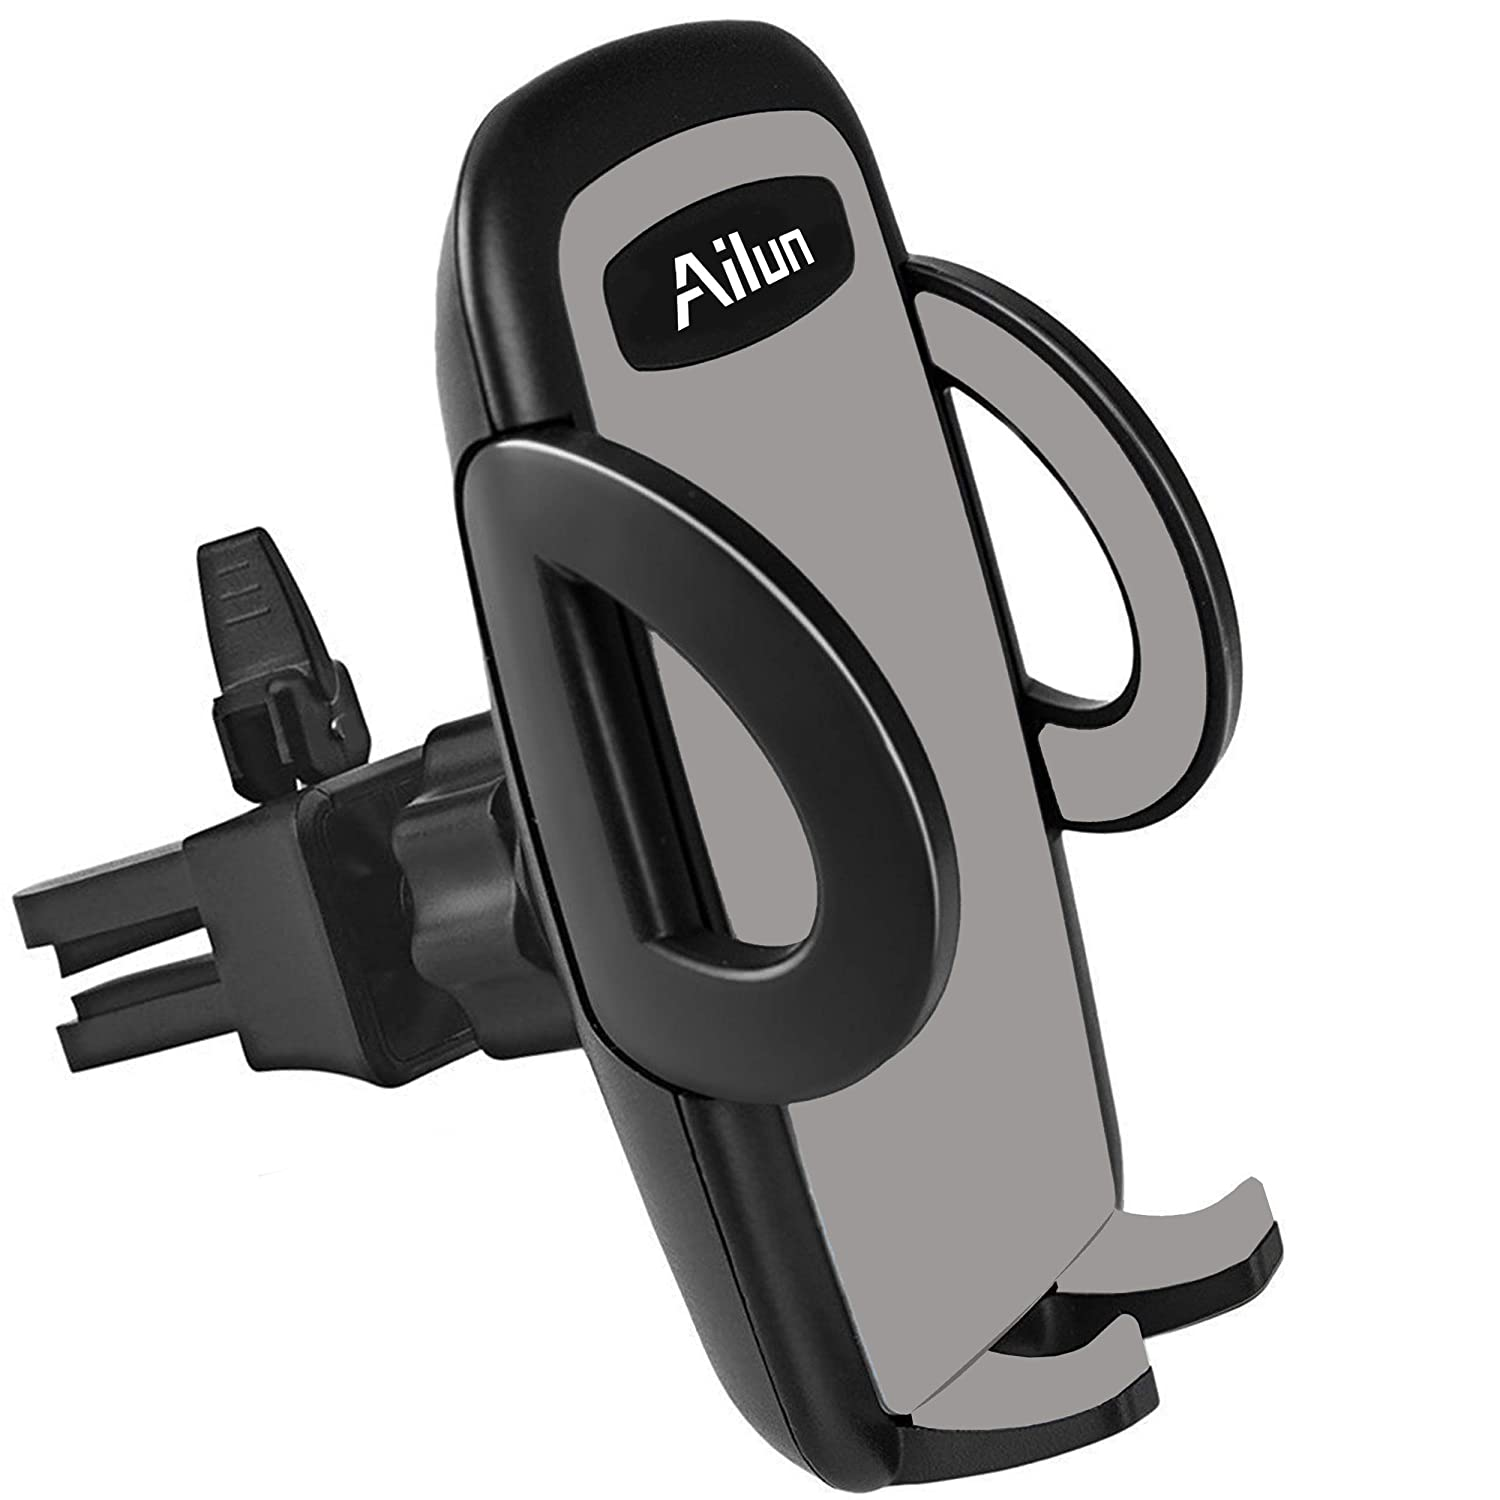 Ailun Car Phone Mount Air Vent Holder Cradle, Compatible iPhone X/Xs/XR/Xs Max, 8/8Plus/7, Galaxy S9/S9+ S8/S8+ S7/S7 Edge, Google, LG, HTC and More Smartphones[Black] Siania 4335022200